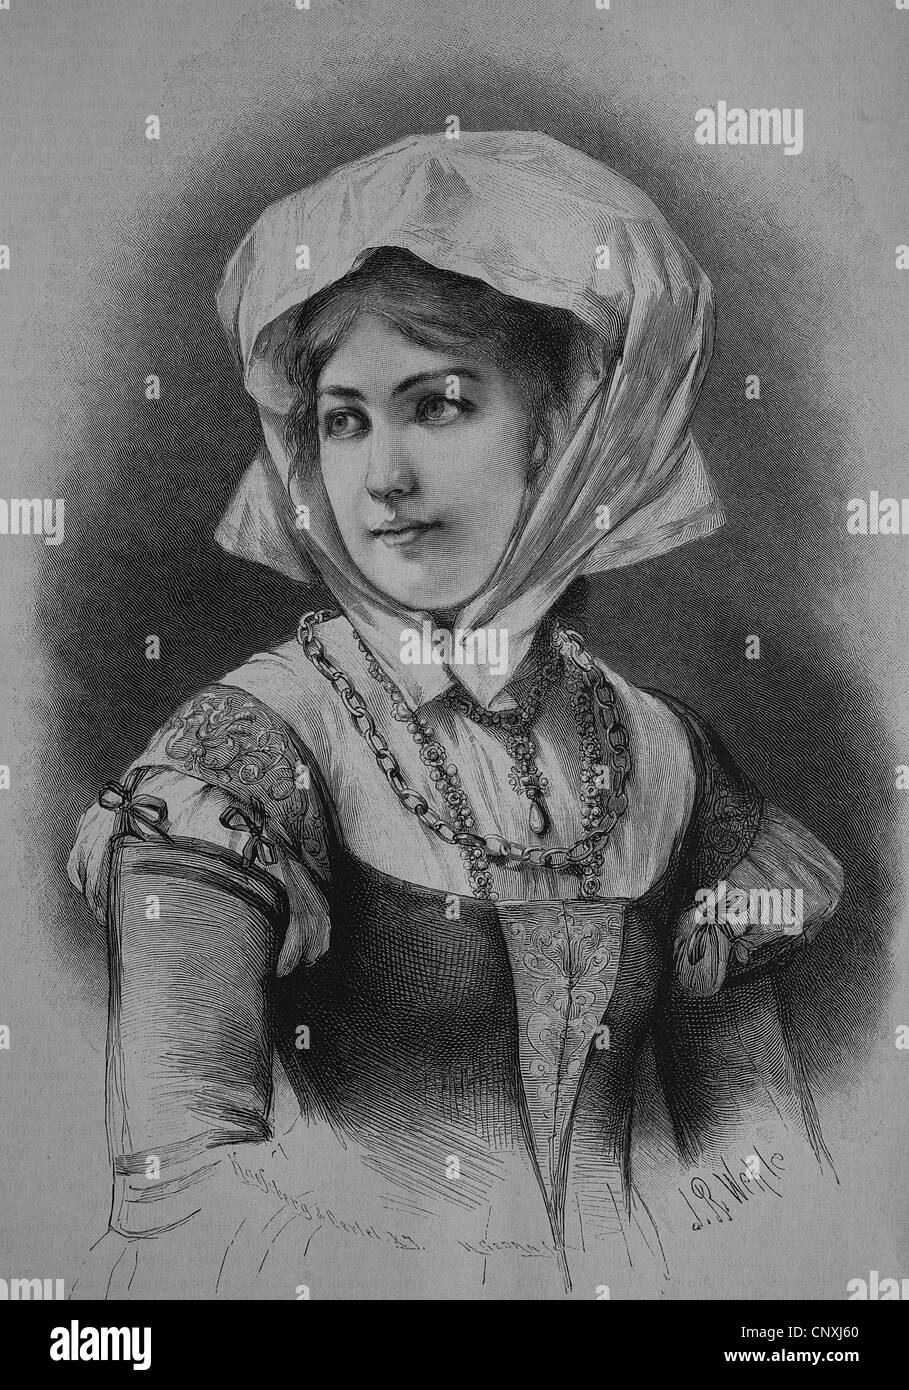 German bourgeouis girl from the 16th Century, historical engraving, 1883 - Stock Image